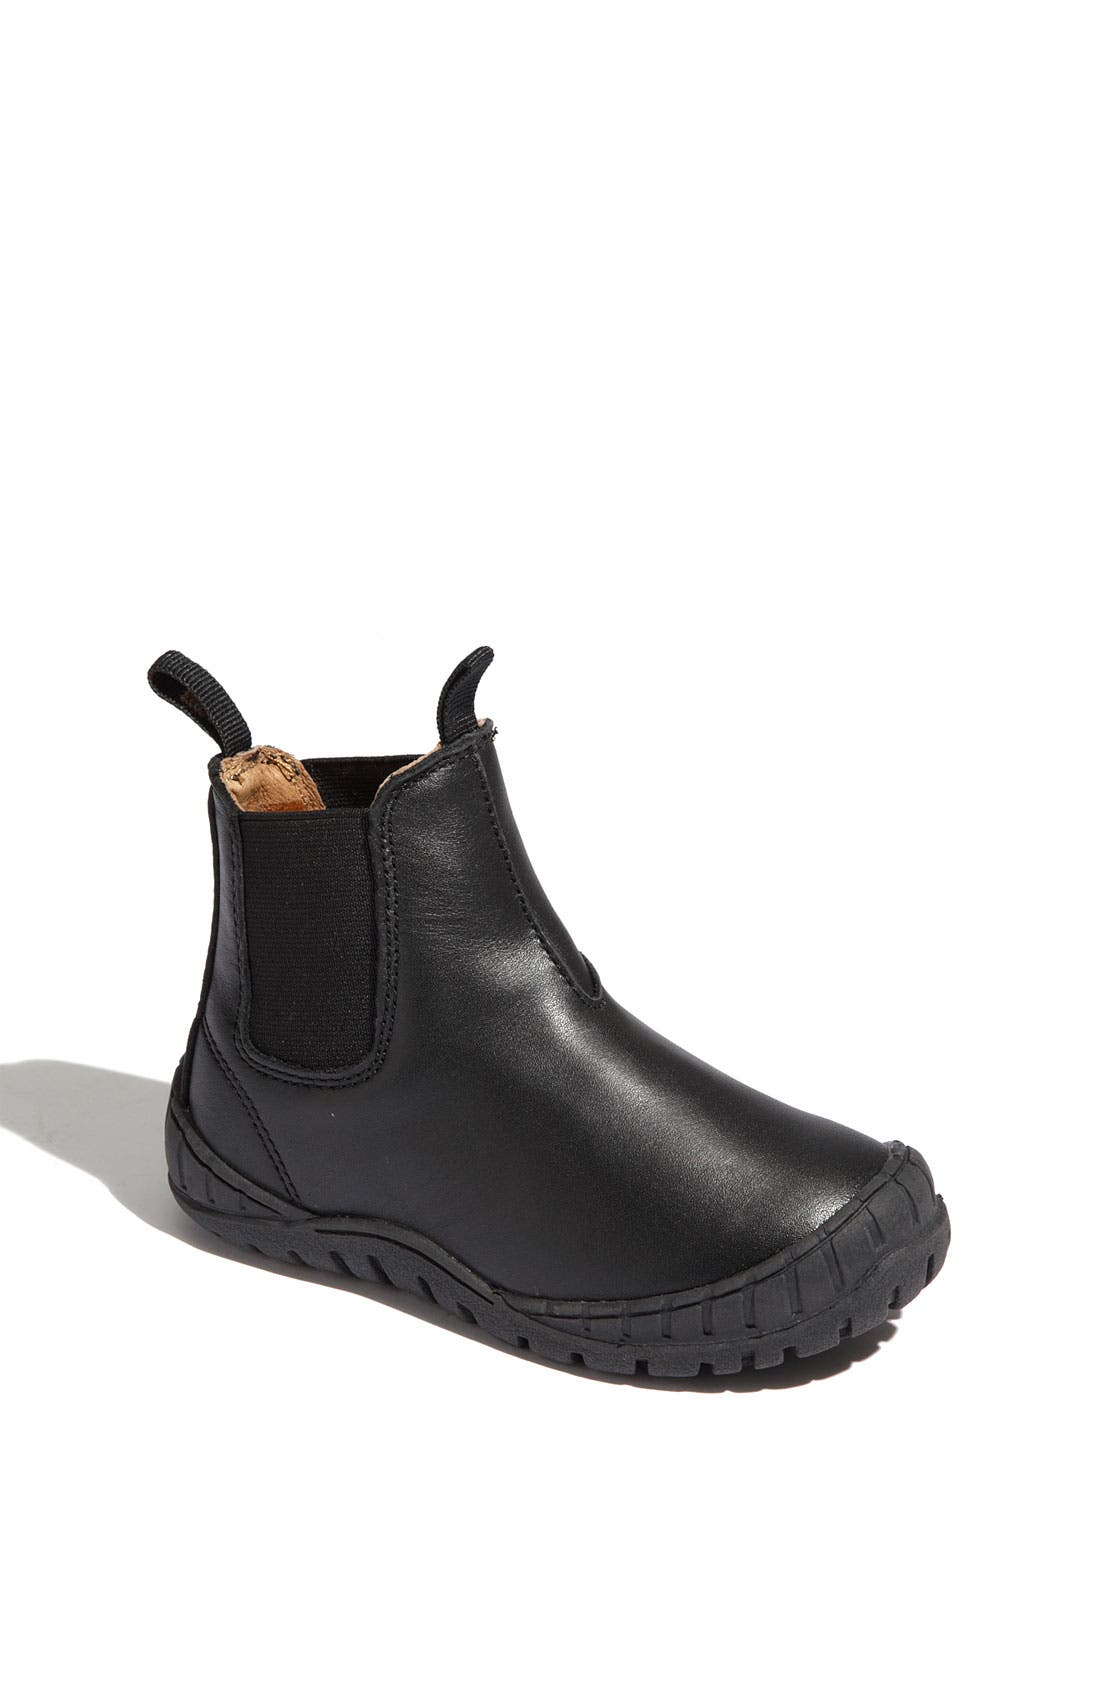 Main Image - Umi 'Reeves' Boot (Toddler, Little Kid & Big Kid)